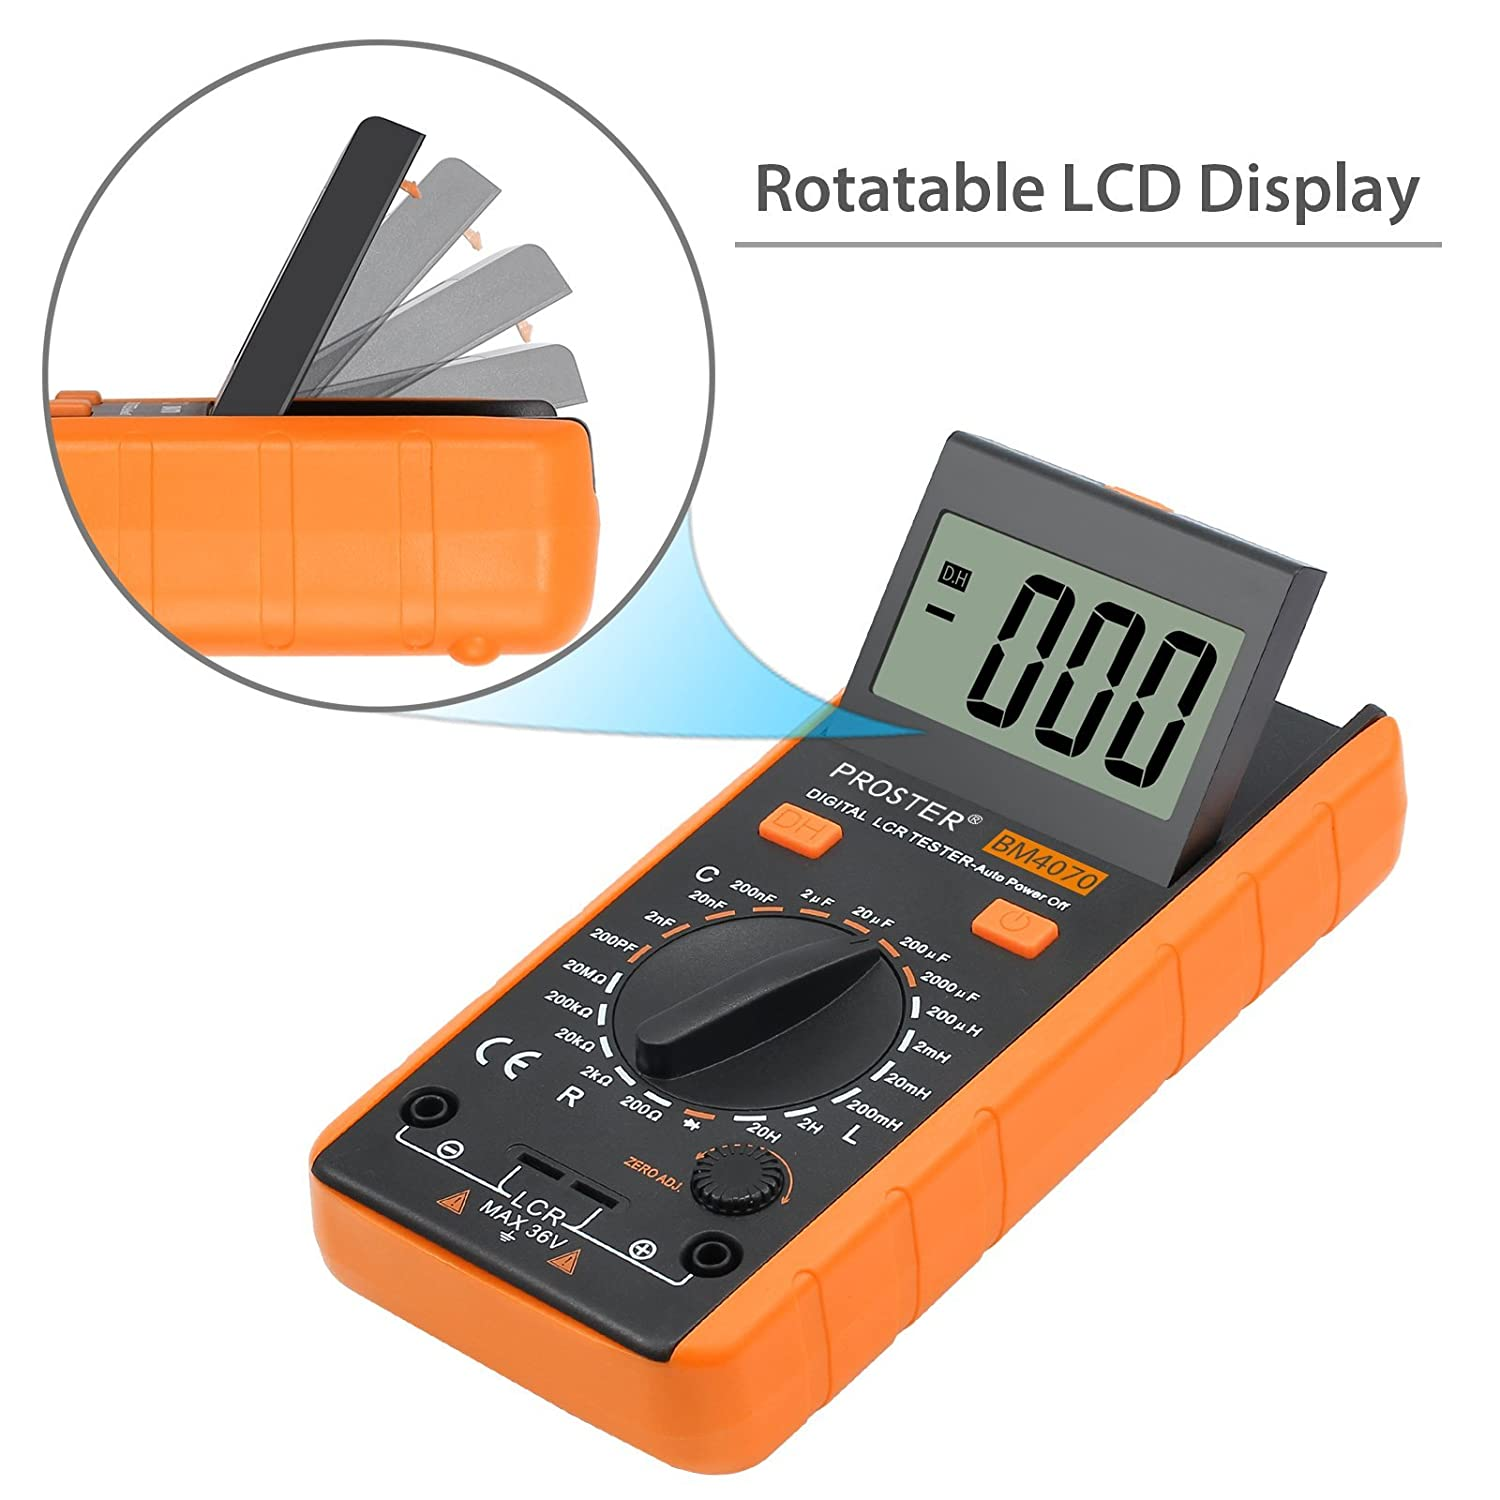 Proster LCR Meter LCD Capacitance Inductance Resistance Tester Measuring Meter Self-discharge With Overrange Display Proster Trading Limited